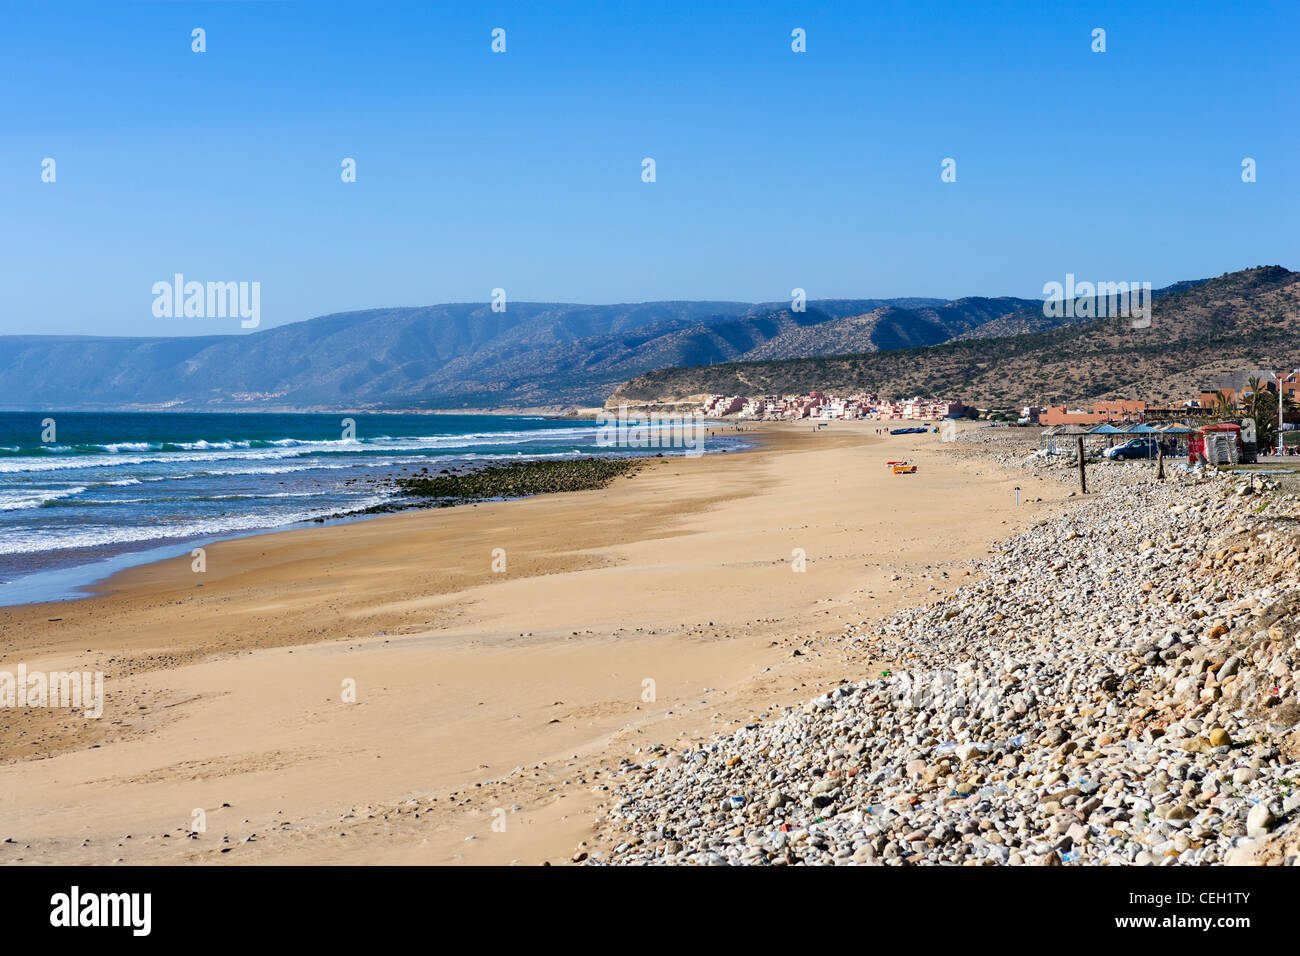 Paradise Plage at Imi Ouaddar north of Taghazout and Agadir, Morocco, North Africa - Stock Image